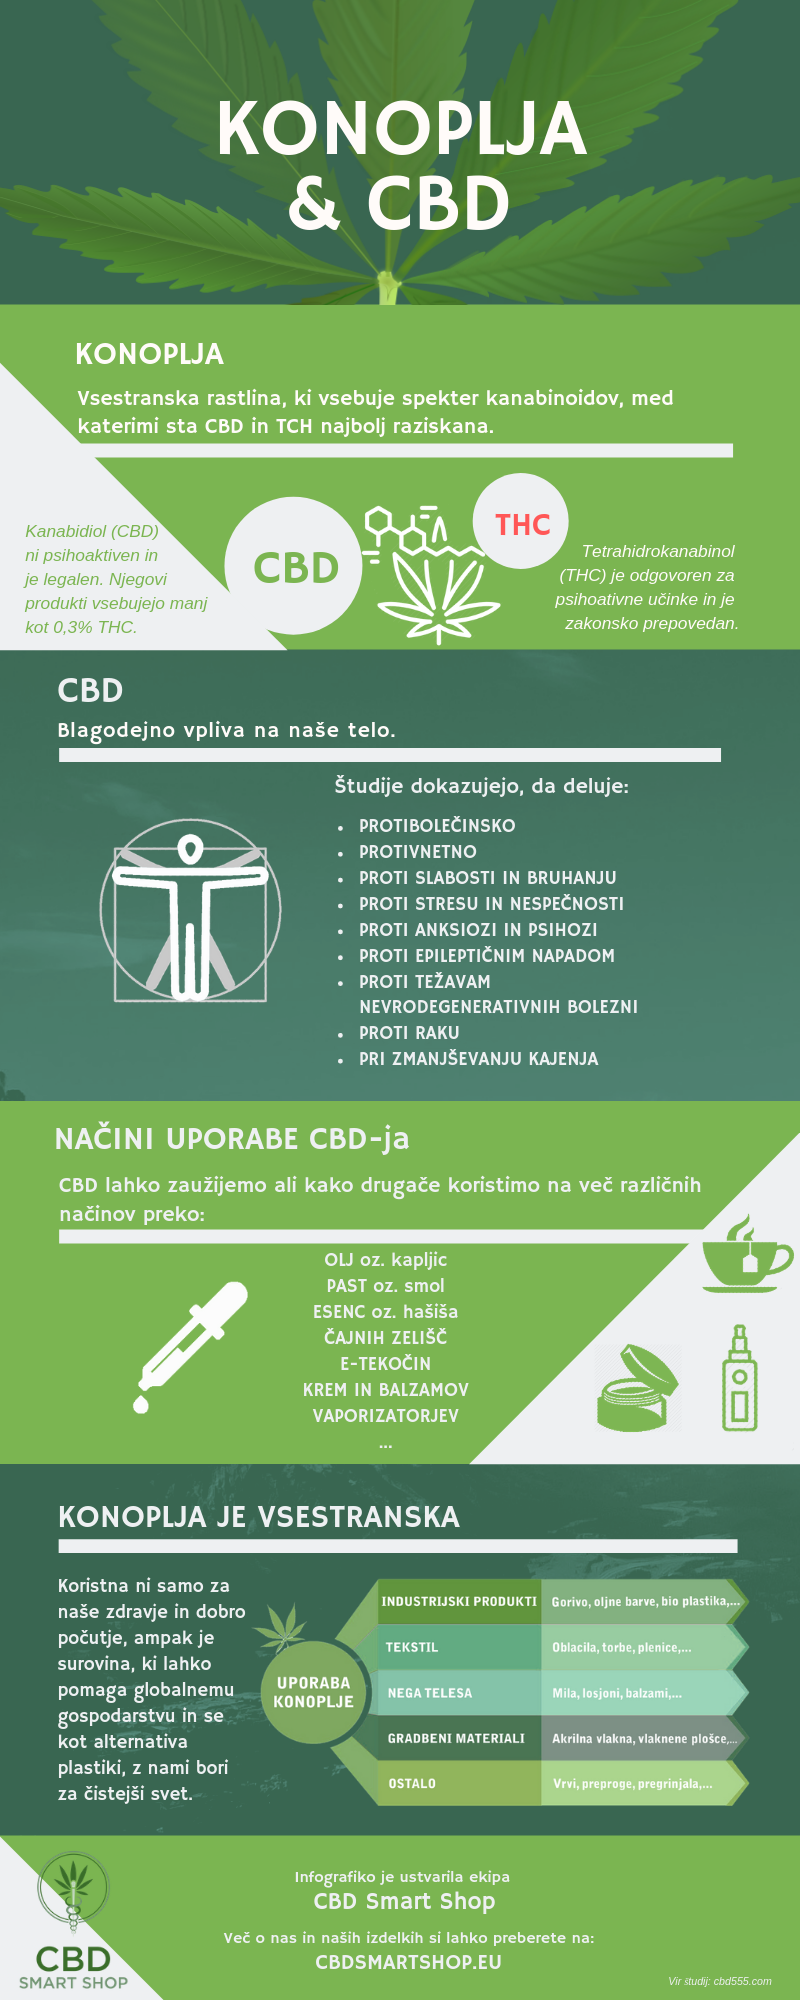 Konoplja in CBD infografika - CBD Smart Shop 2019